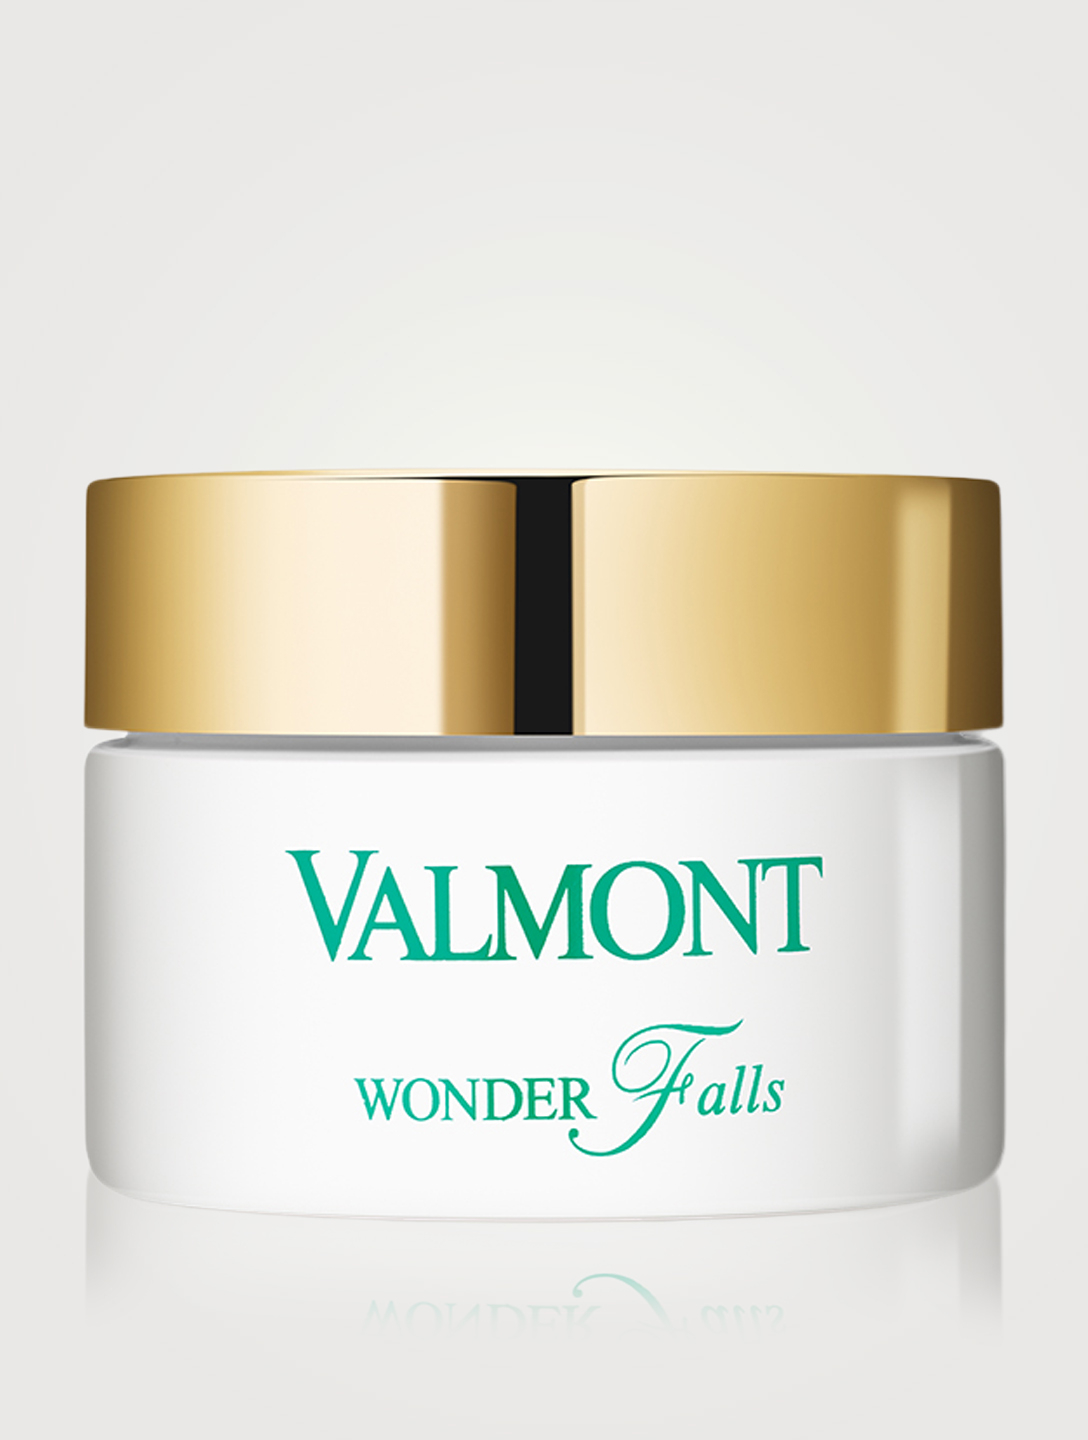 VALMONT Comforting Makeup Removing Cream Beauty